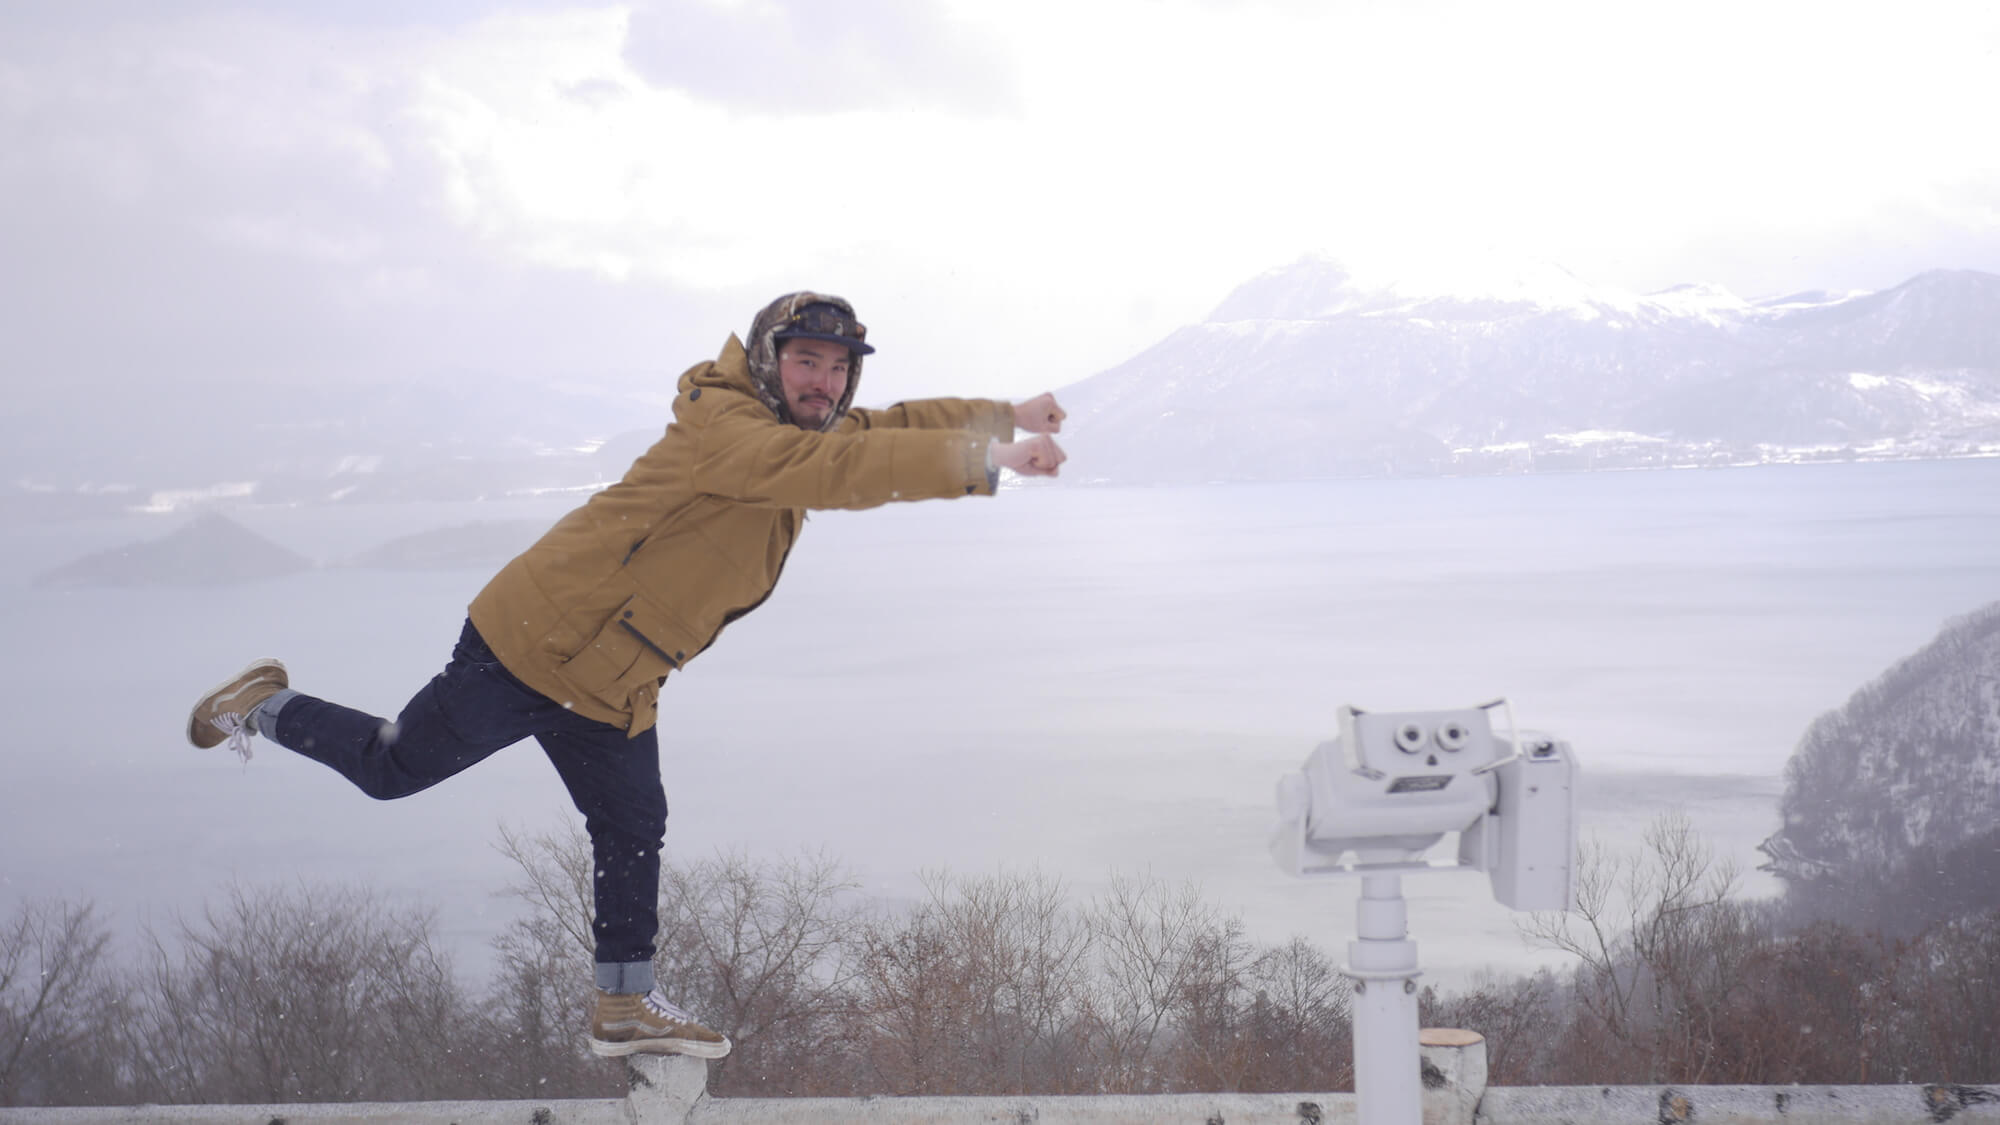 A RECENT AND RARE PHOTO (HE'S USUALLY BEHIND THE CAMERA) TAKEN OF JAMES AT LAKE TOYA IN HOKKAIDO, JAPAN.